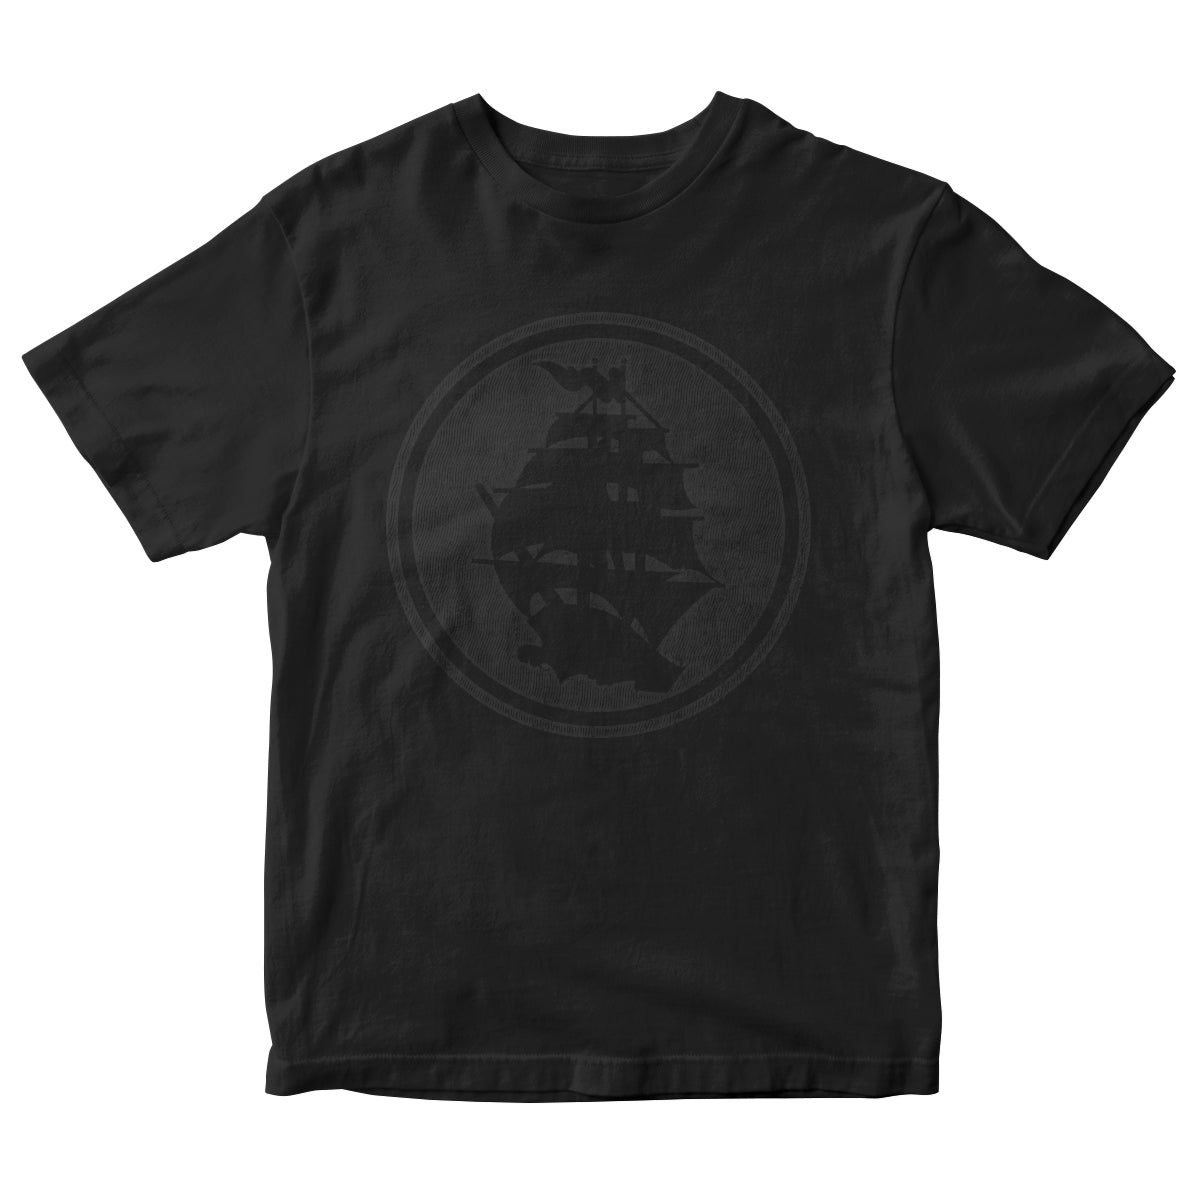 Pirates Press - Circle Logo - Black on Black - T-Shirt